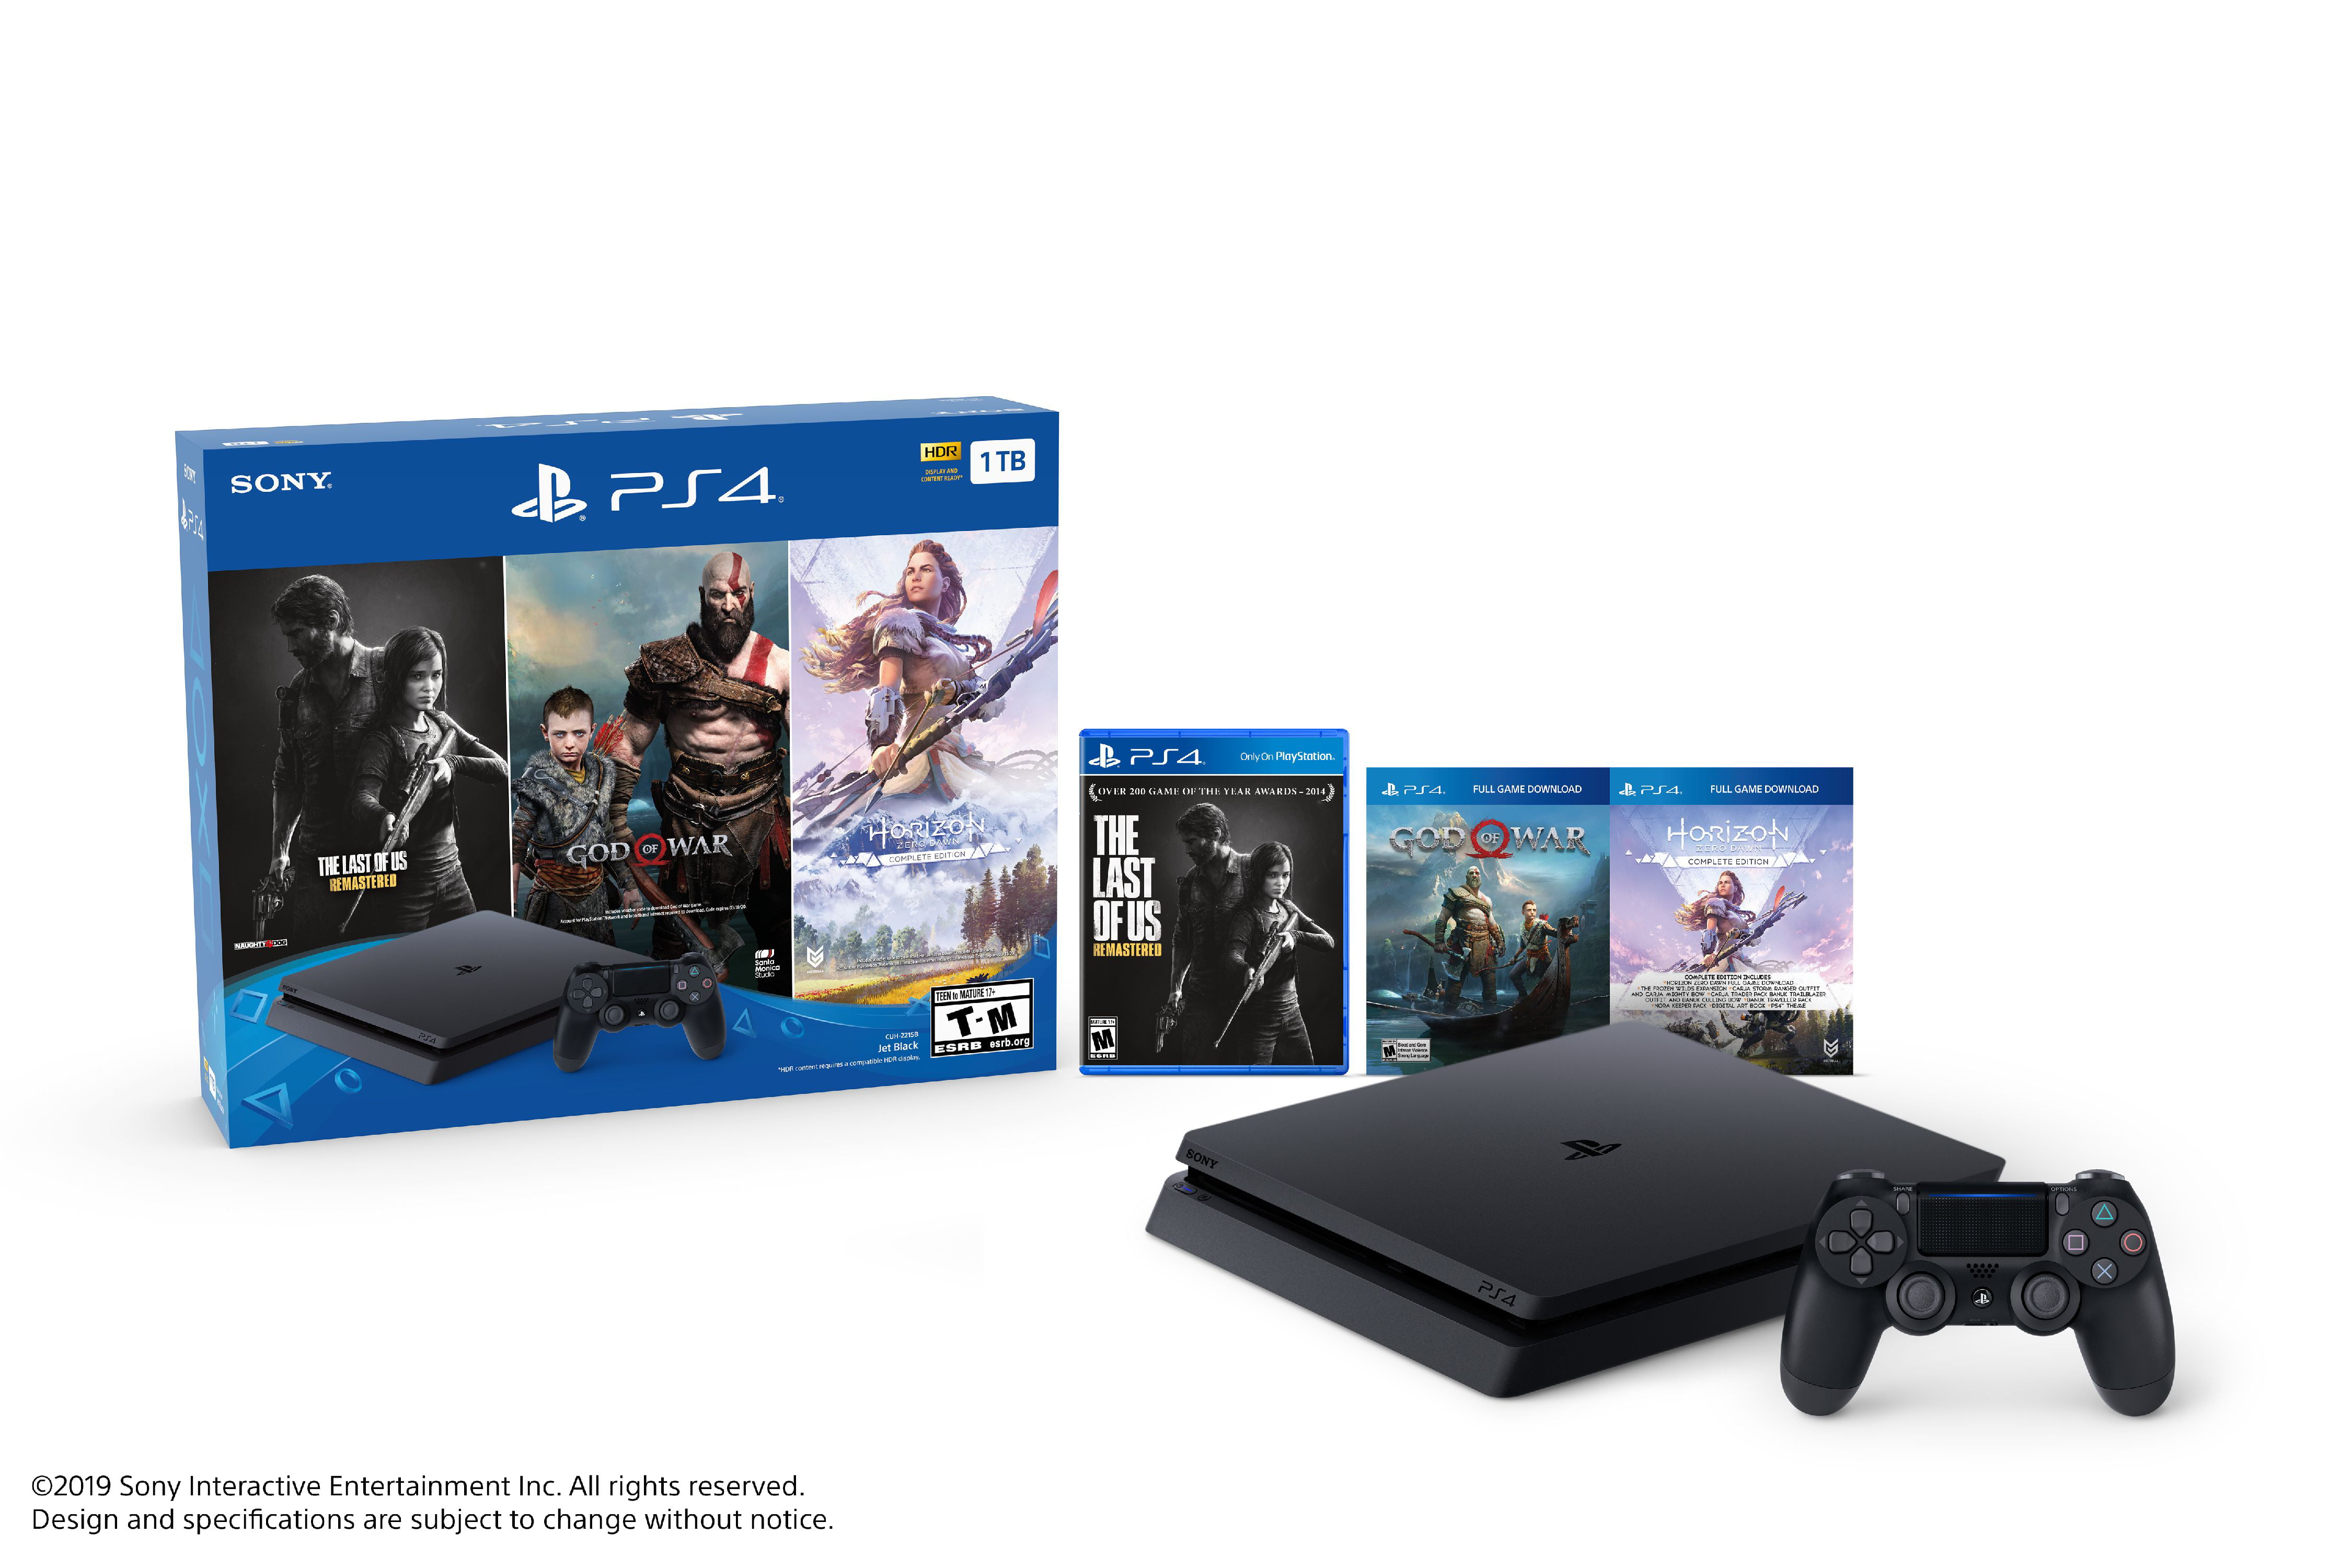 Sony Playstation Slim 4 1tb Only On Playstation Ps4 Console Bundle Black Walmart Com Walmart Com